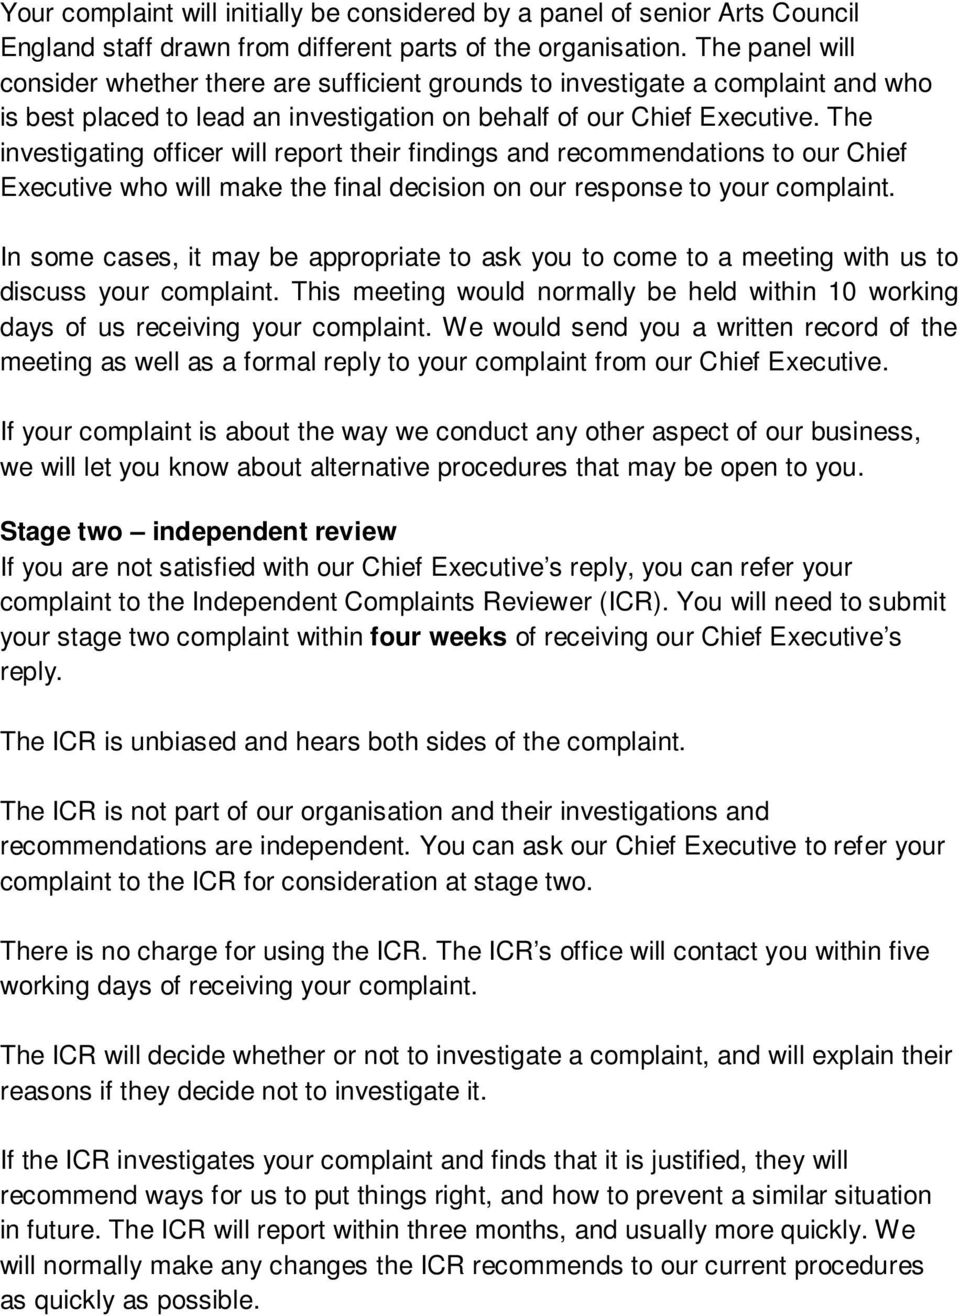 The investigating officer will report their findings and recommendations to our Chief Executive who will make the final decision on our response to your complaint.